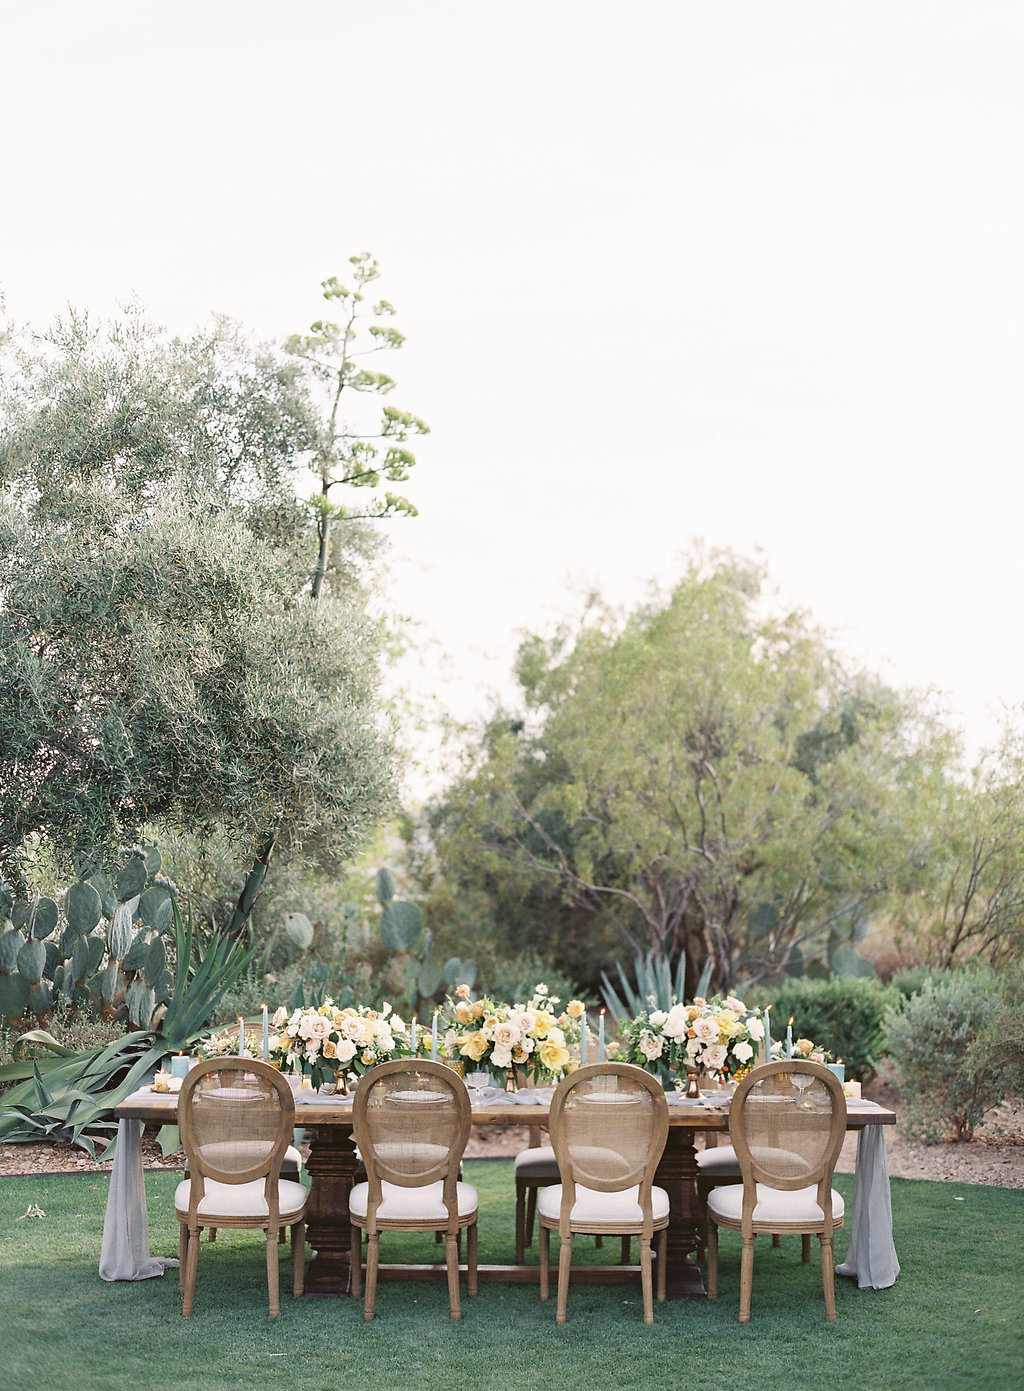 el-chorro-wedding-tablescape